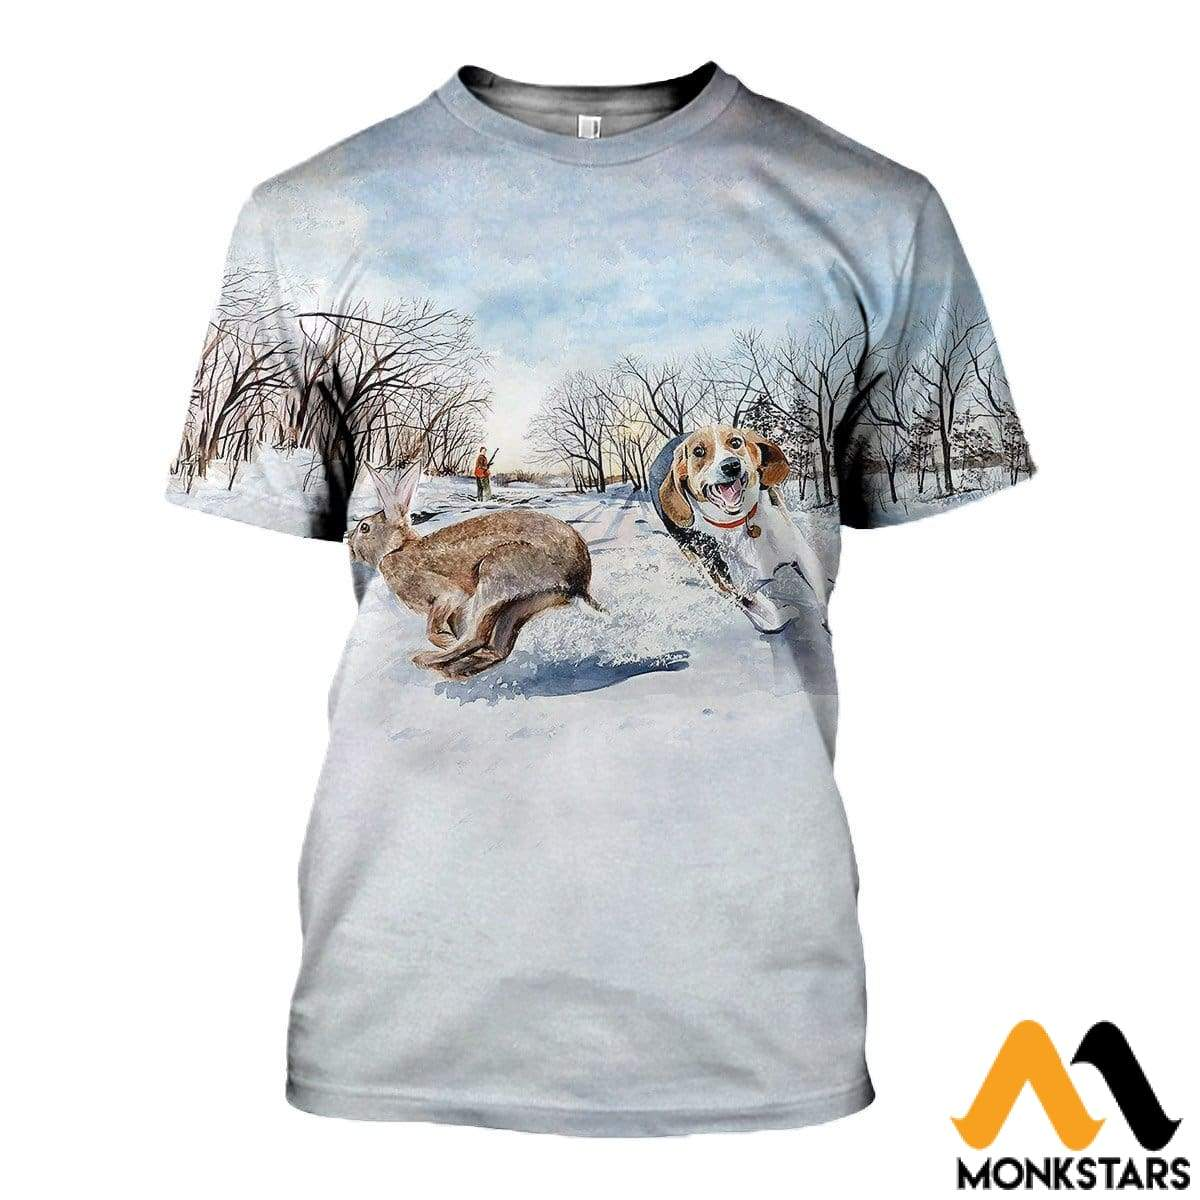 3D All Over Printed Beagle Chasing Rabbit Clothes T-Shirt / Xs